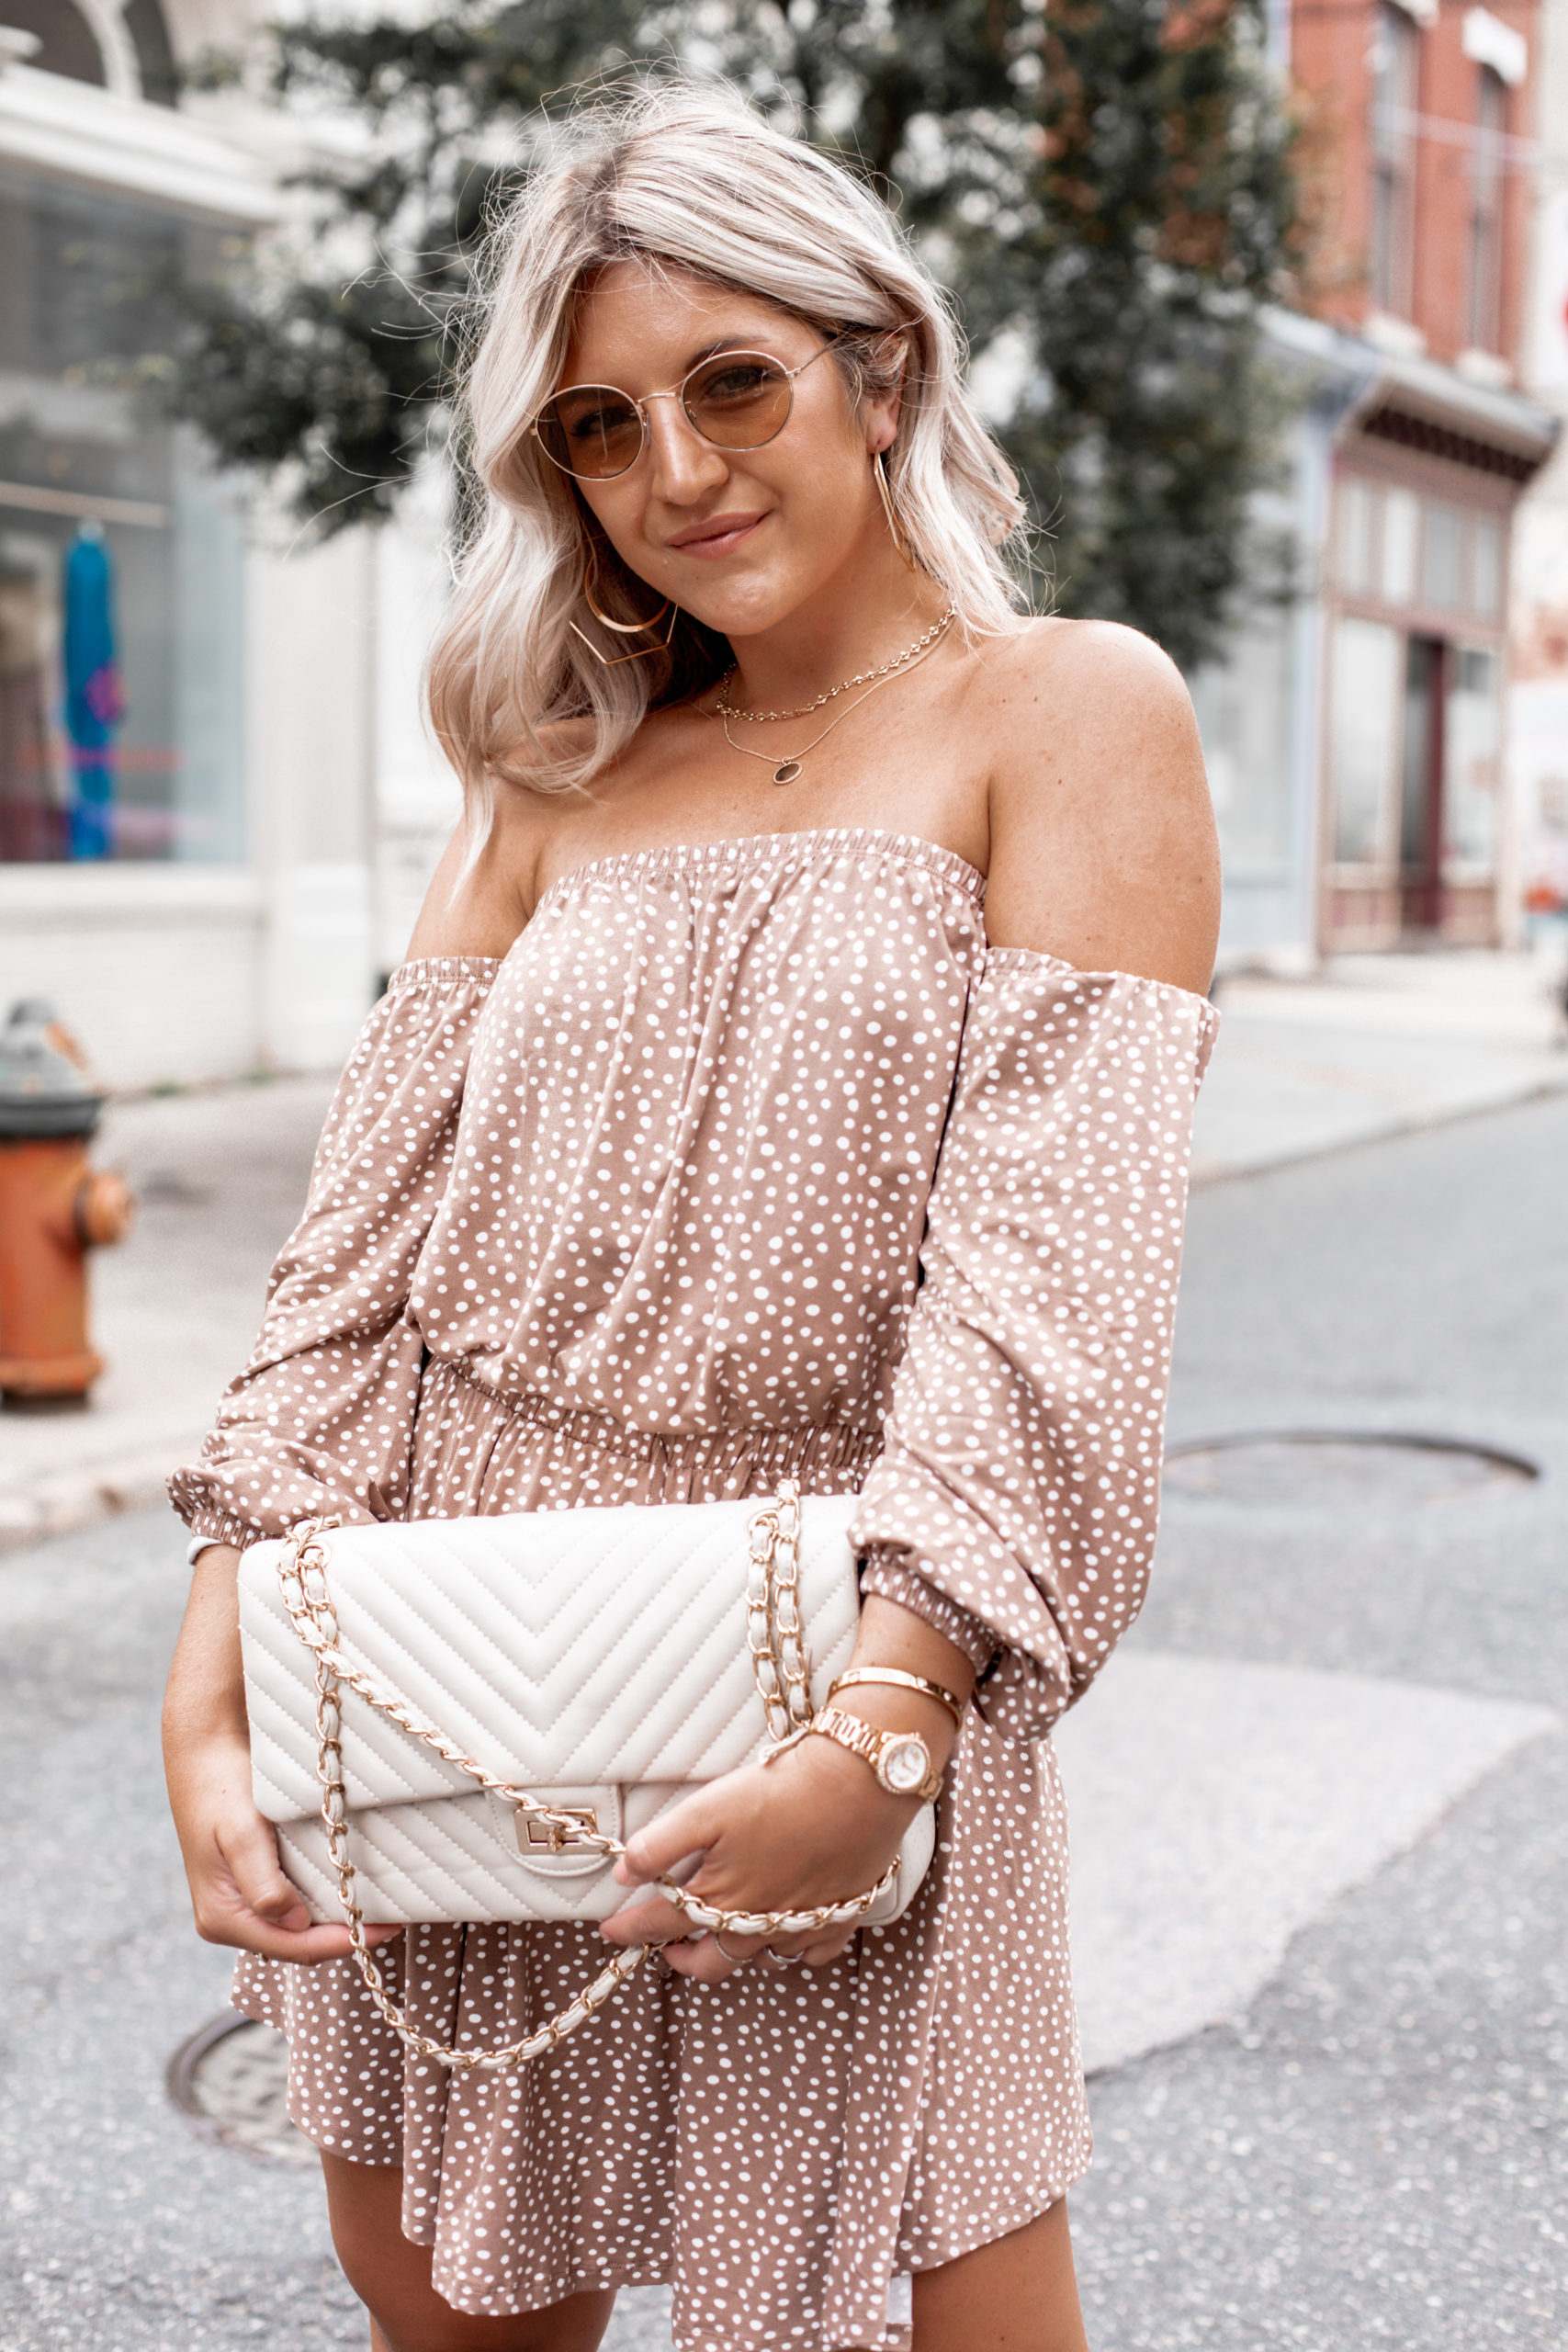 The Top 5 Handbags for Fall